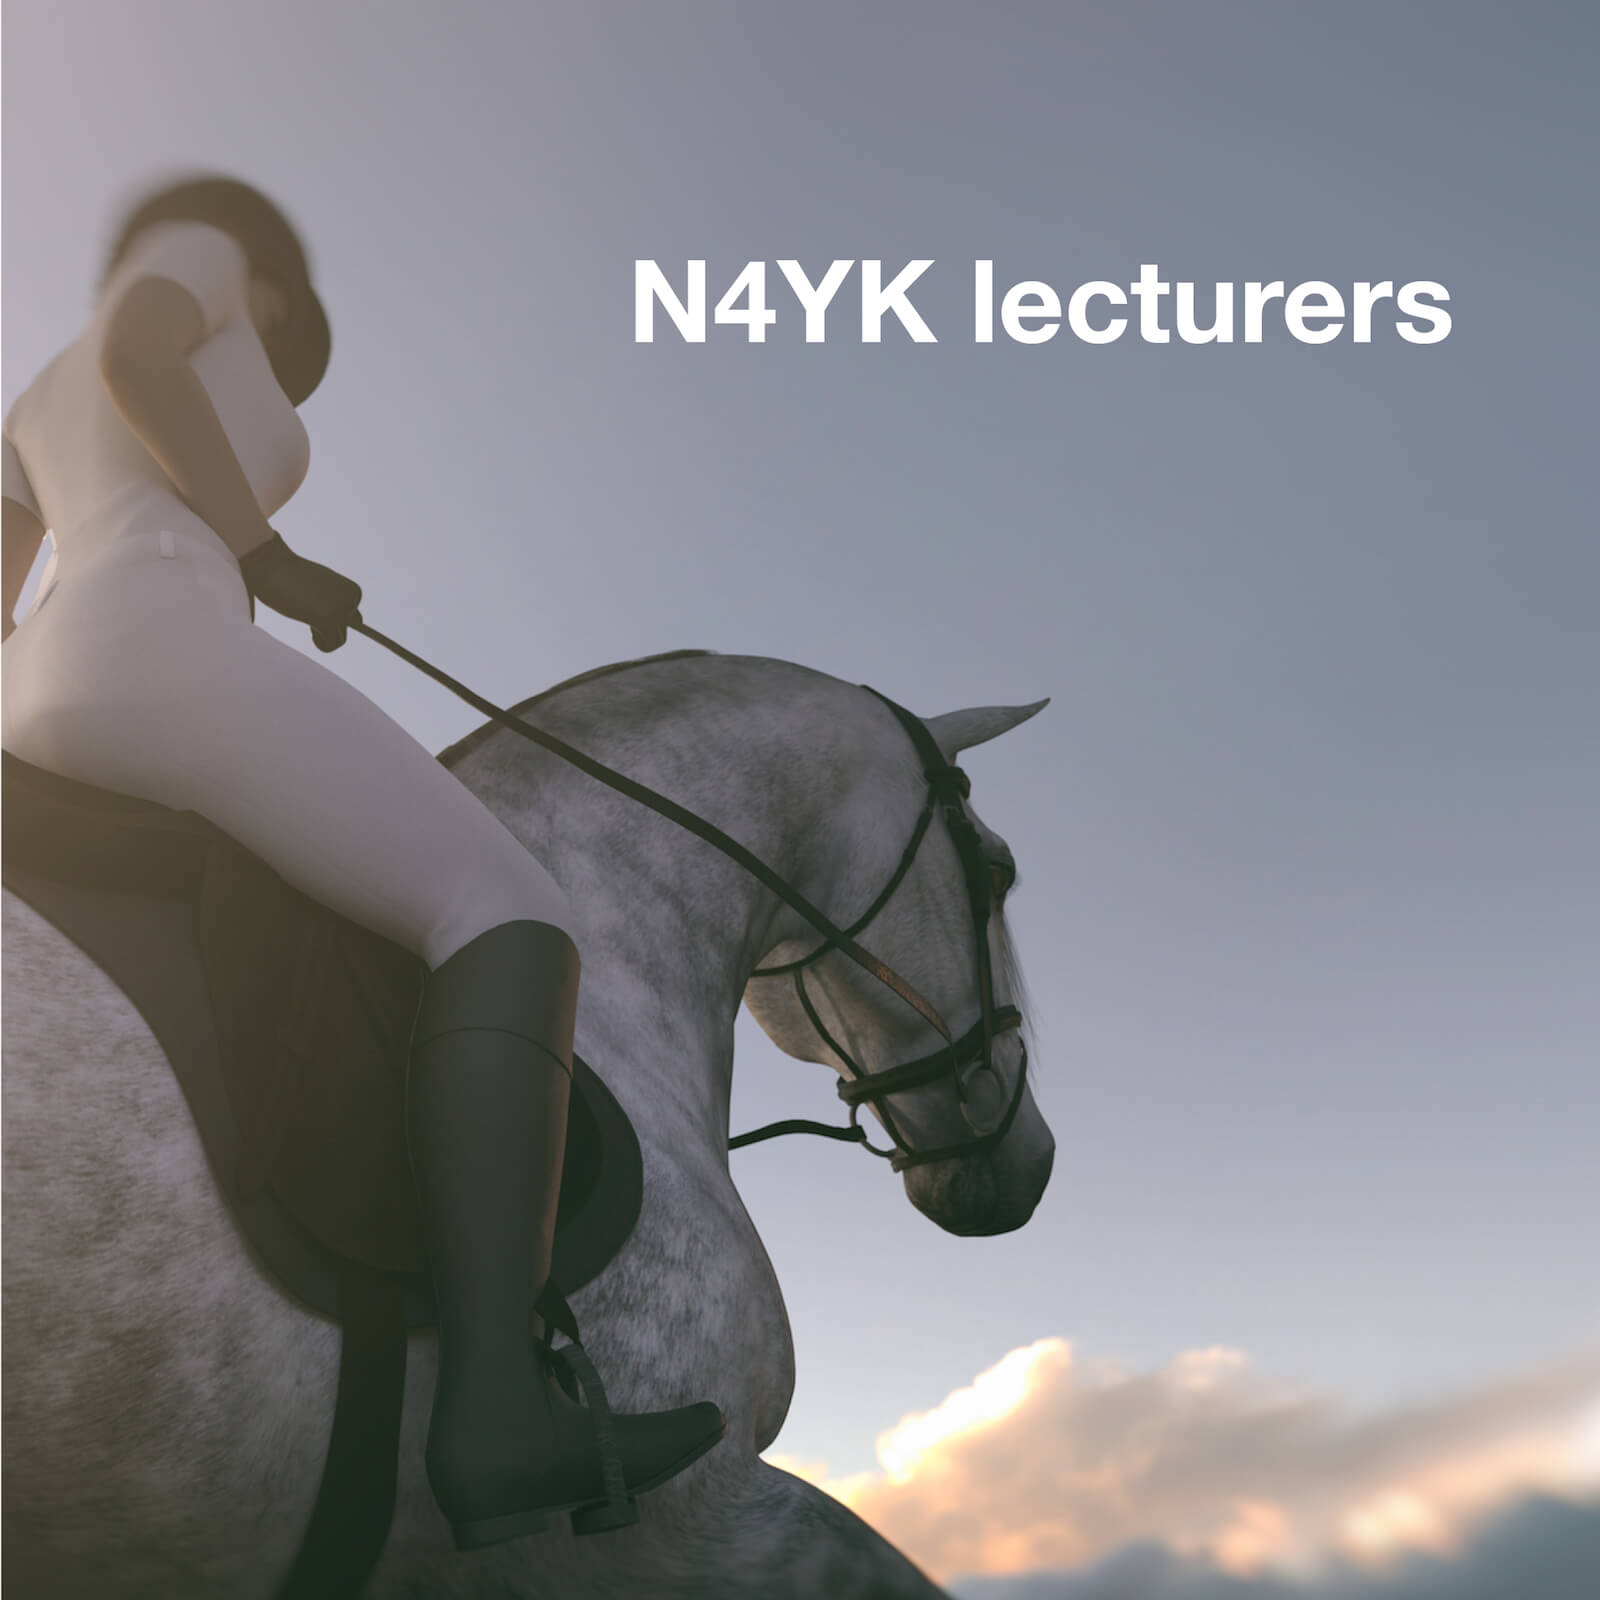 professional and qualified lecturers at N4YK